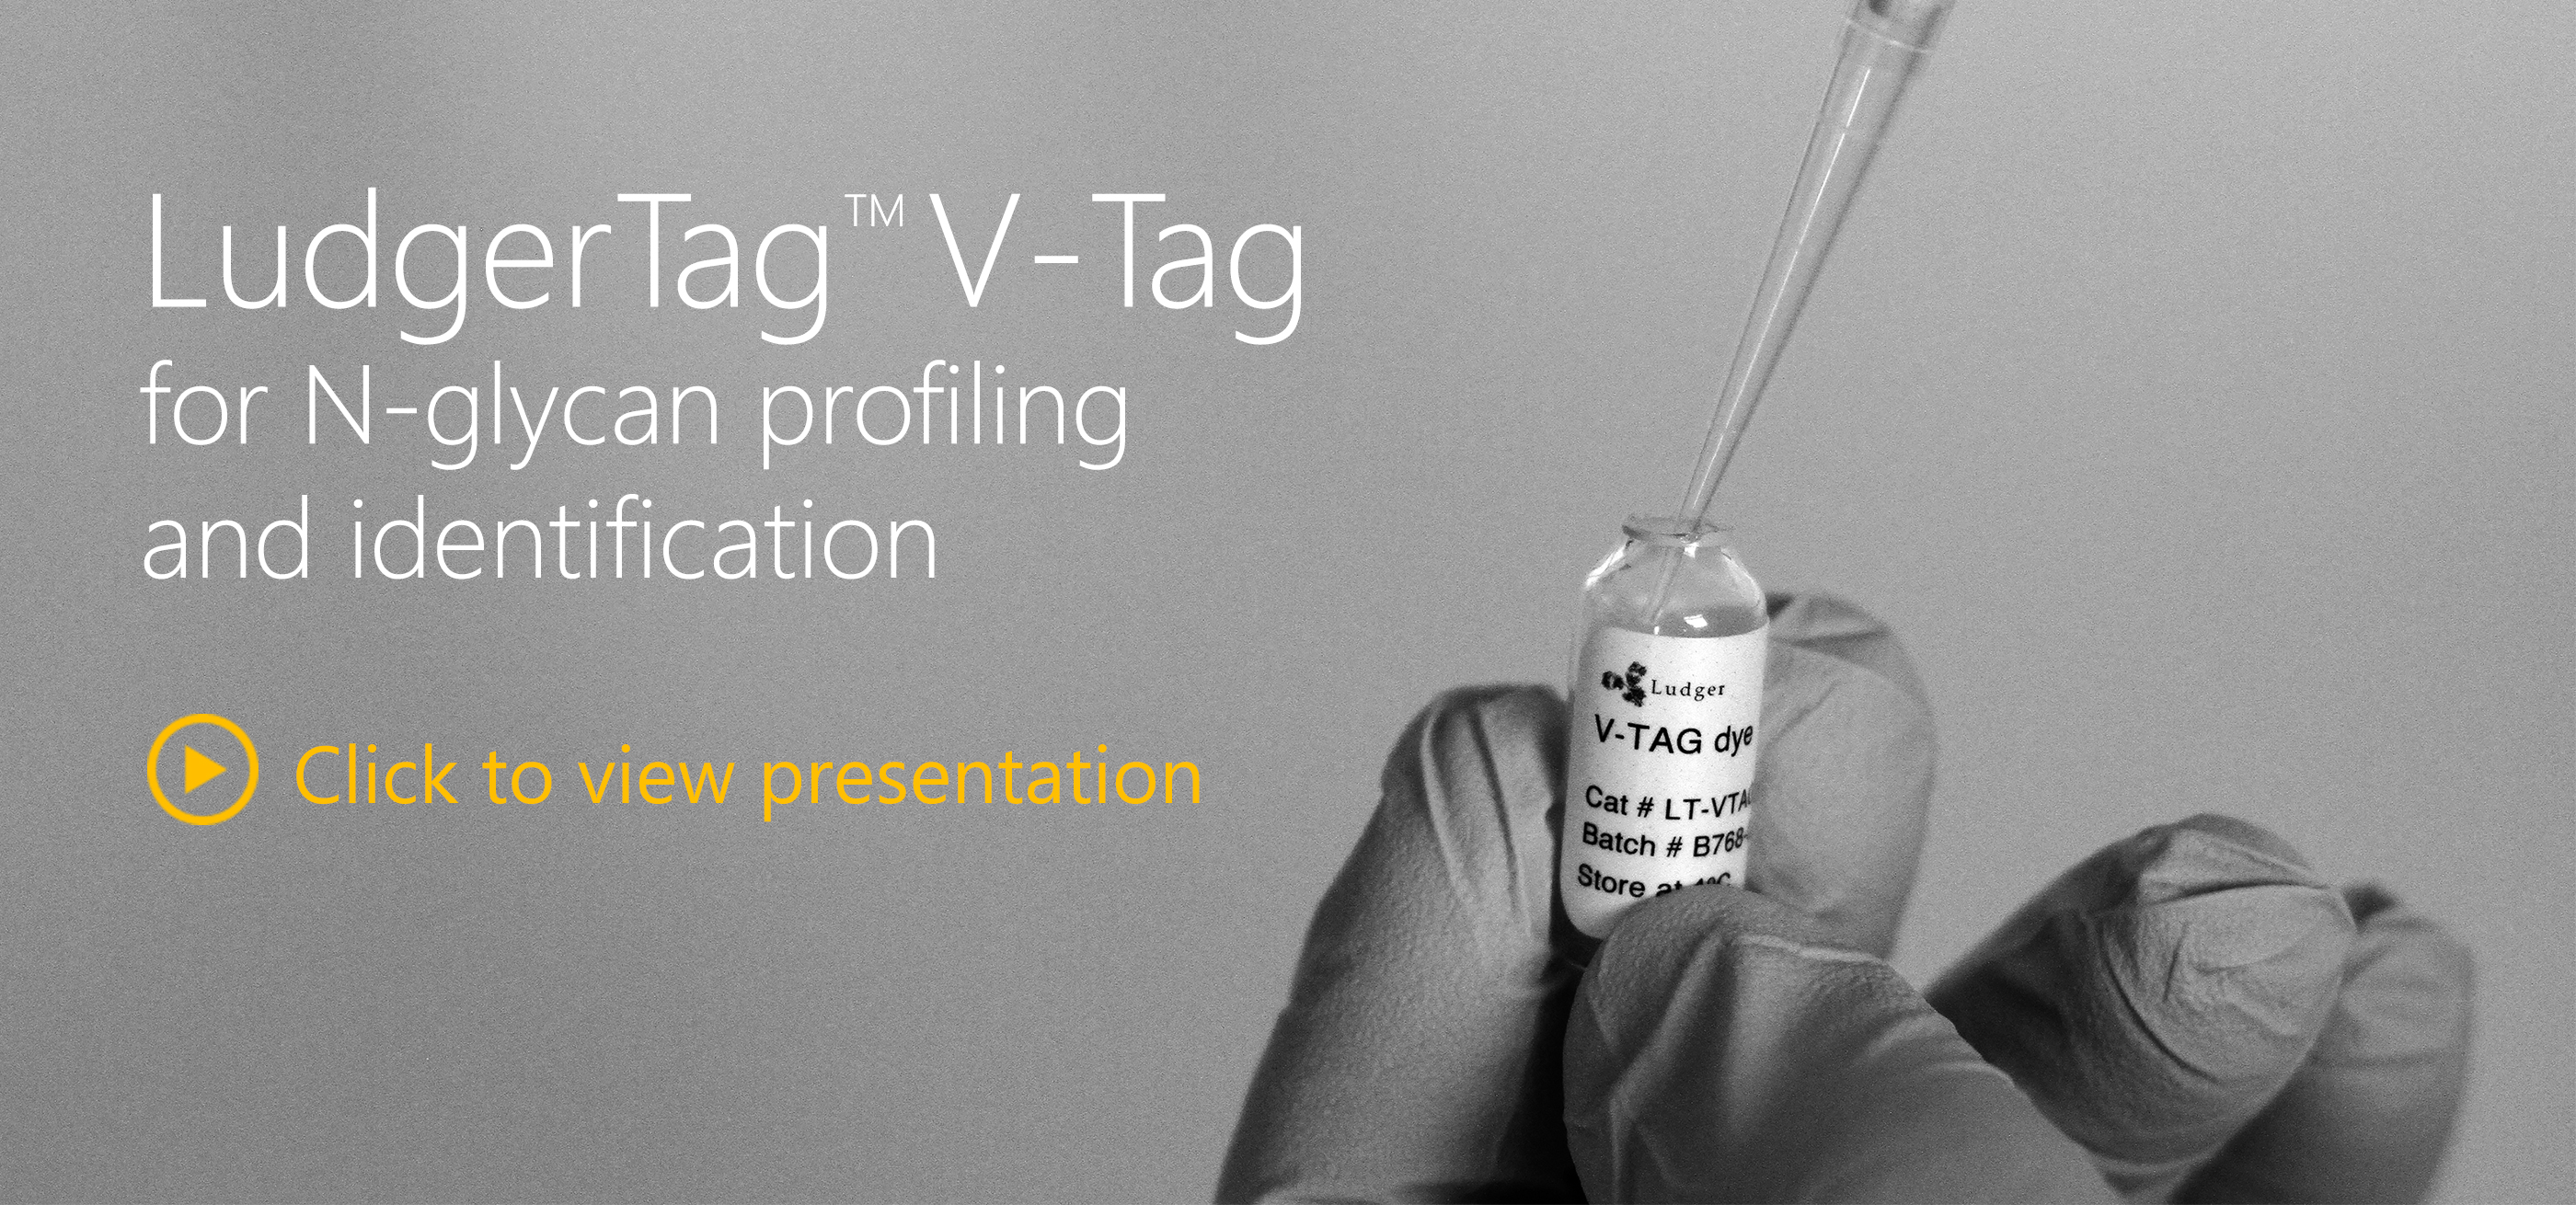 ludger v-tag glycan release and labeling kit